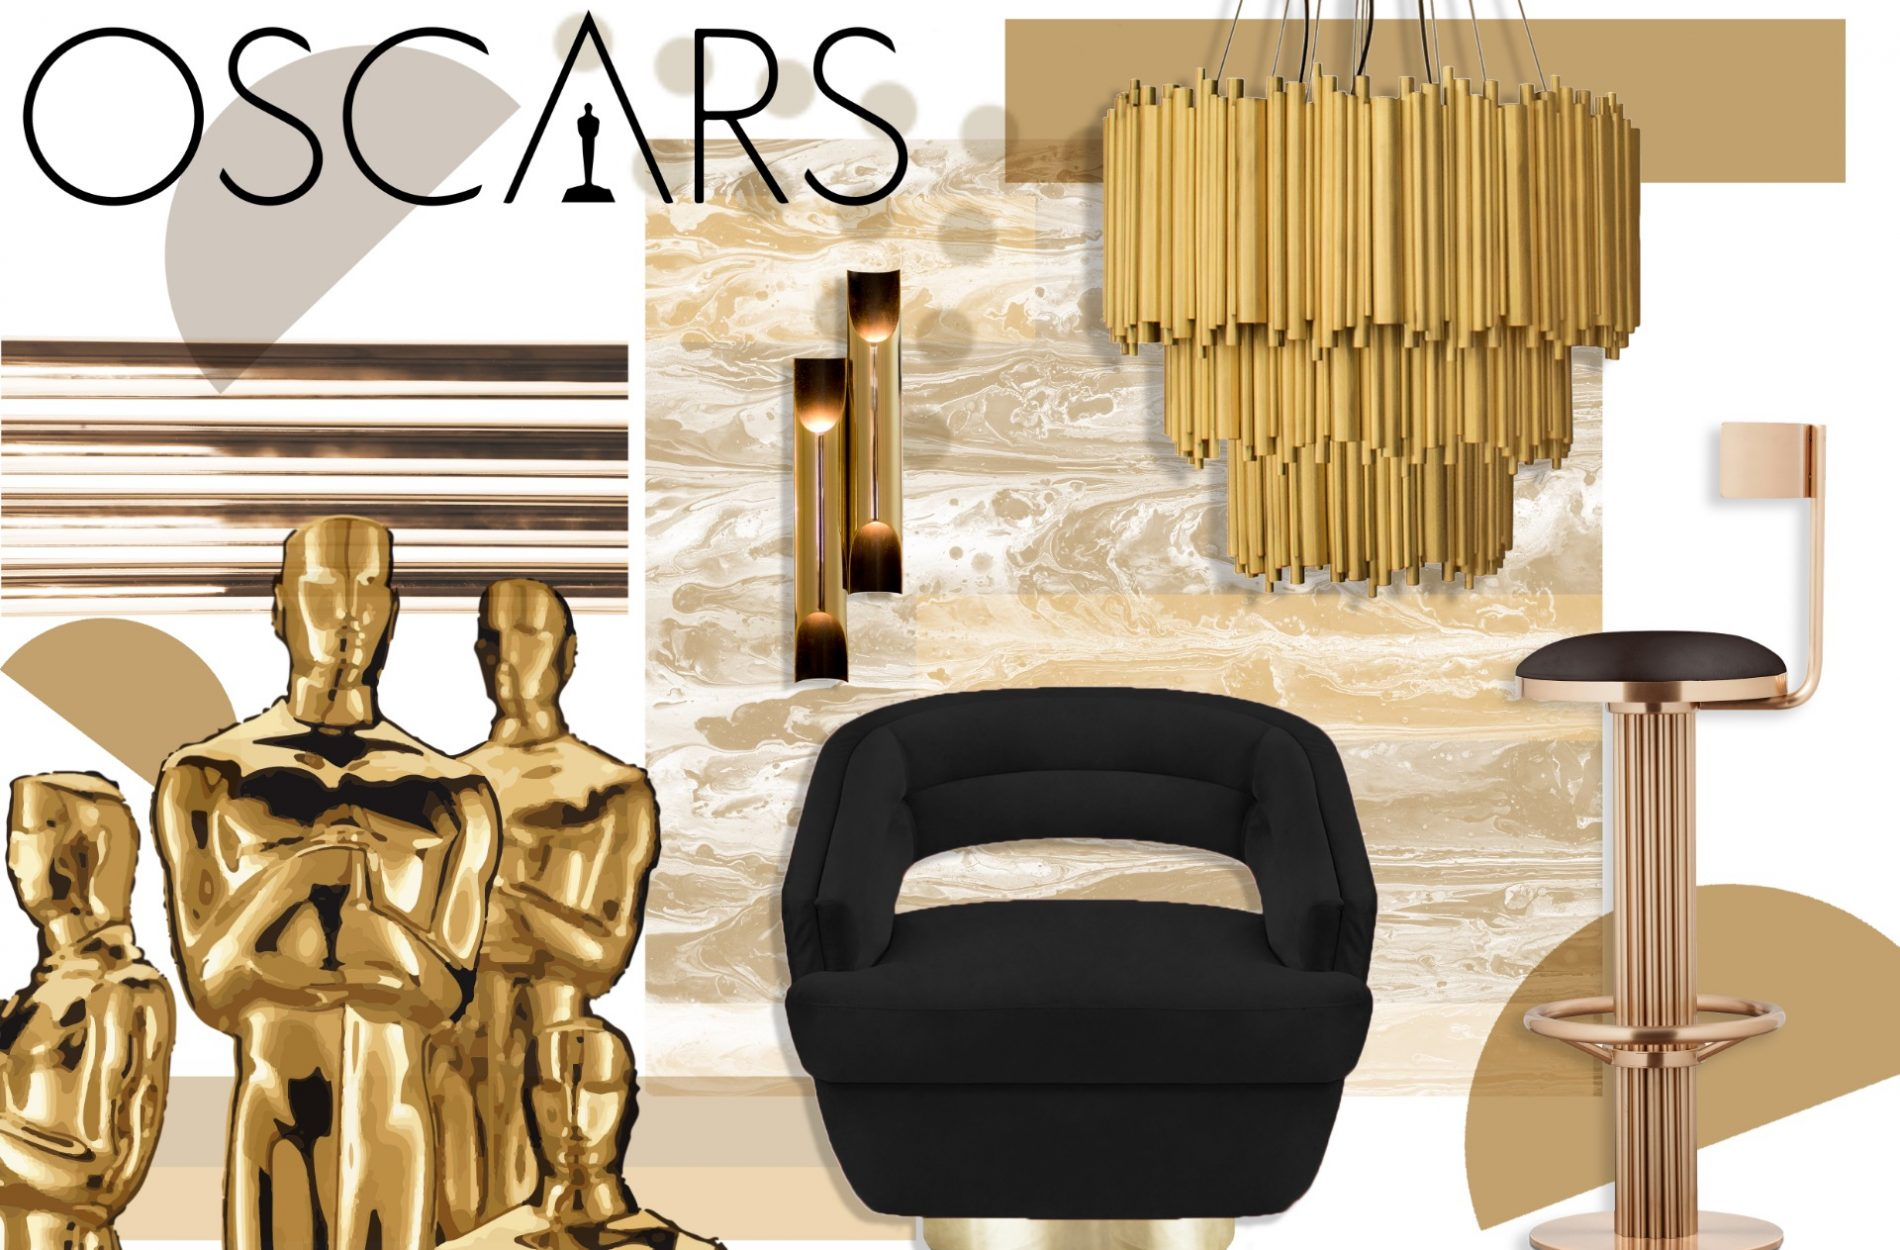 Oscars 2020 Featuring DelightFULL And Essential Home